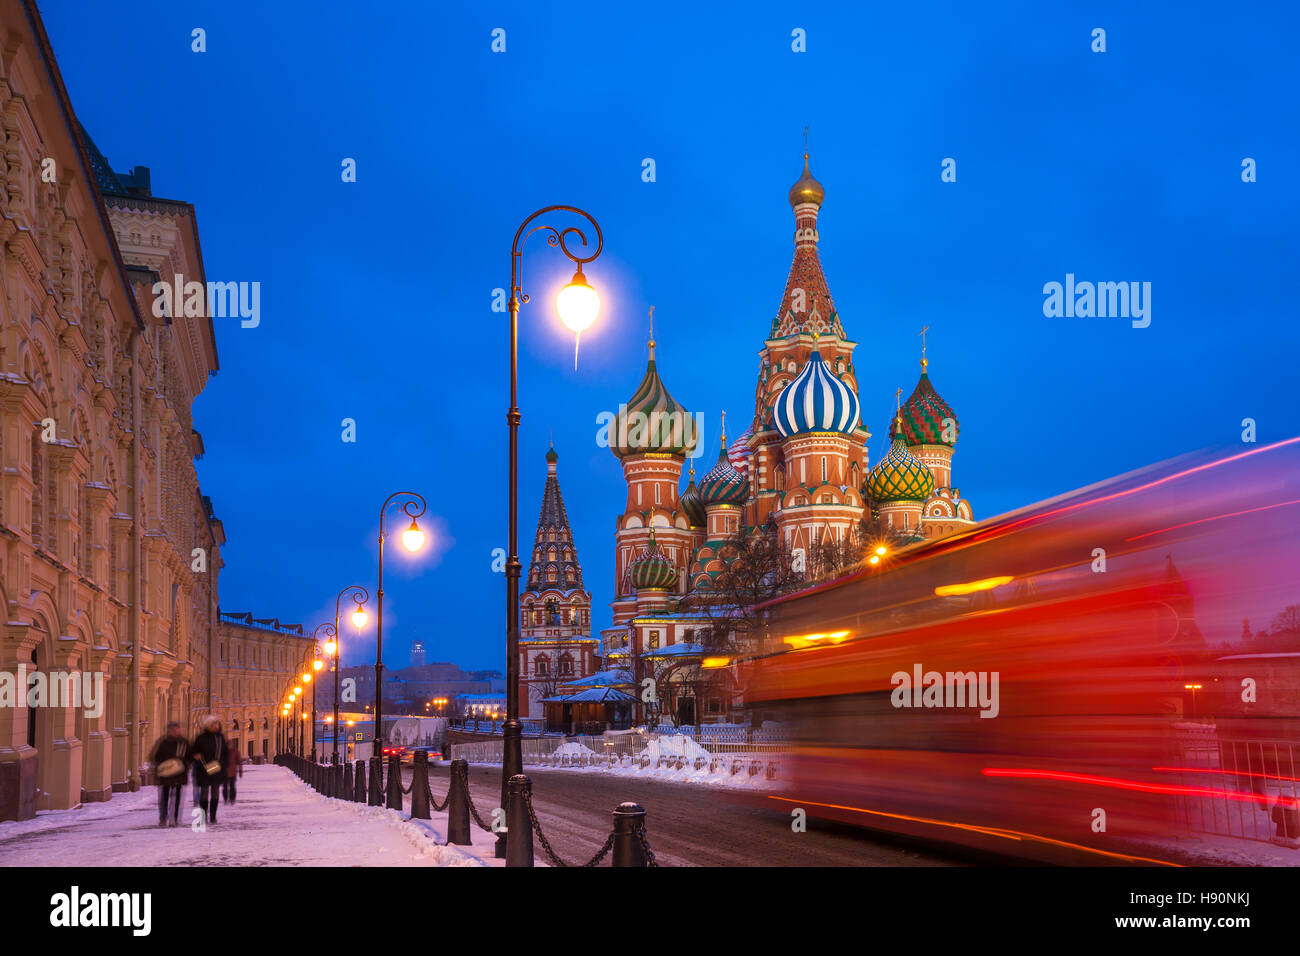 Red touristic bus passing by St. Basils Cathedral at dusk, Red Square, Moscow, Russia - Stock Image